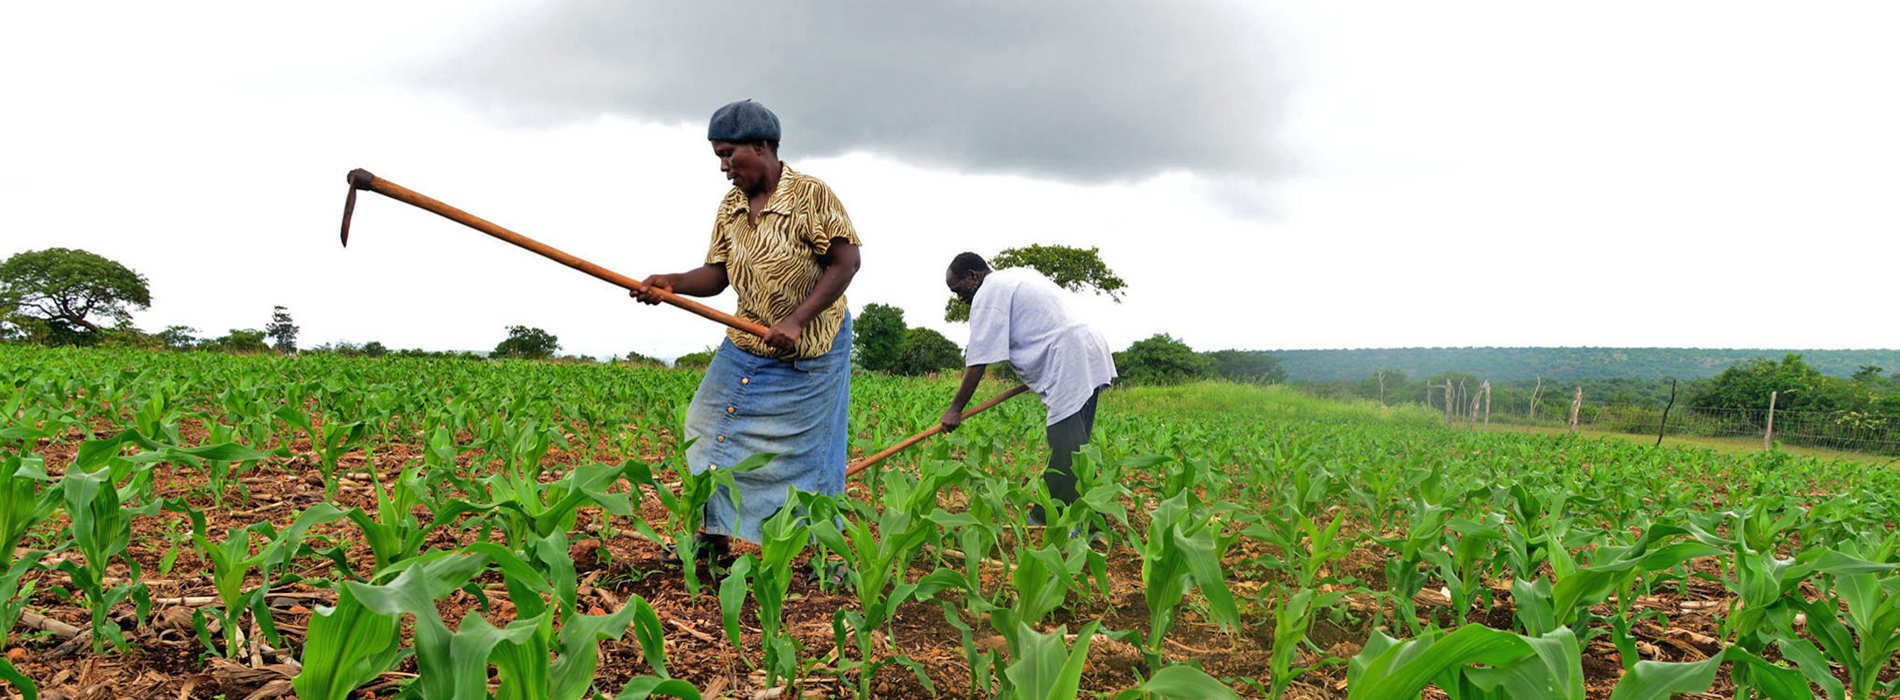 Identify strategies to improve agriculture output